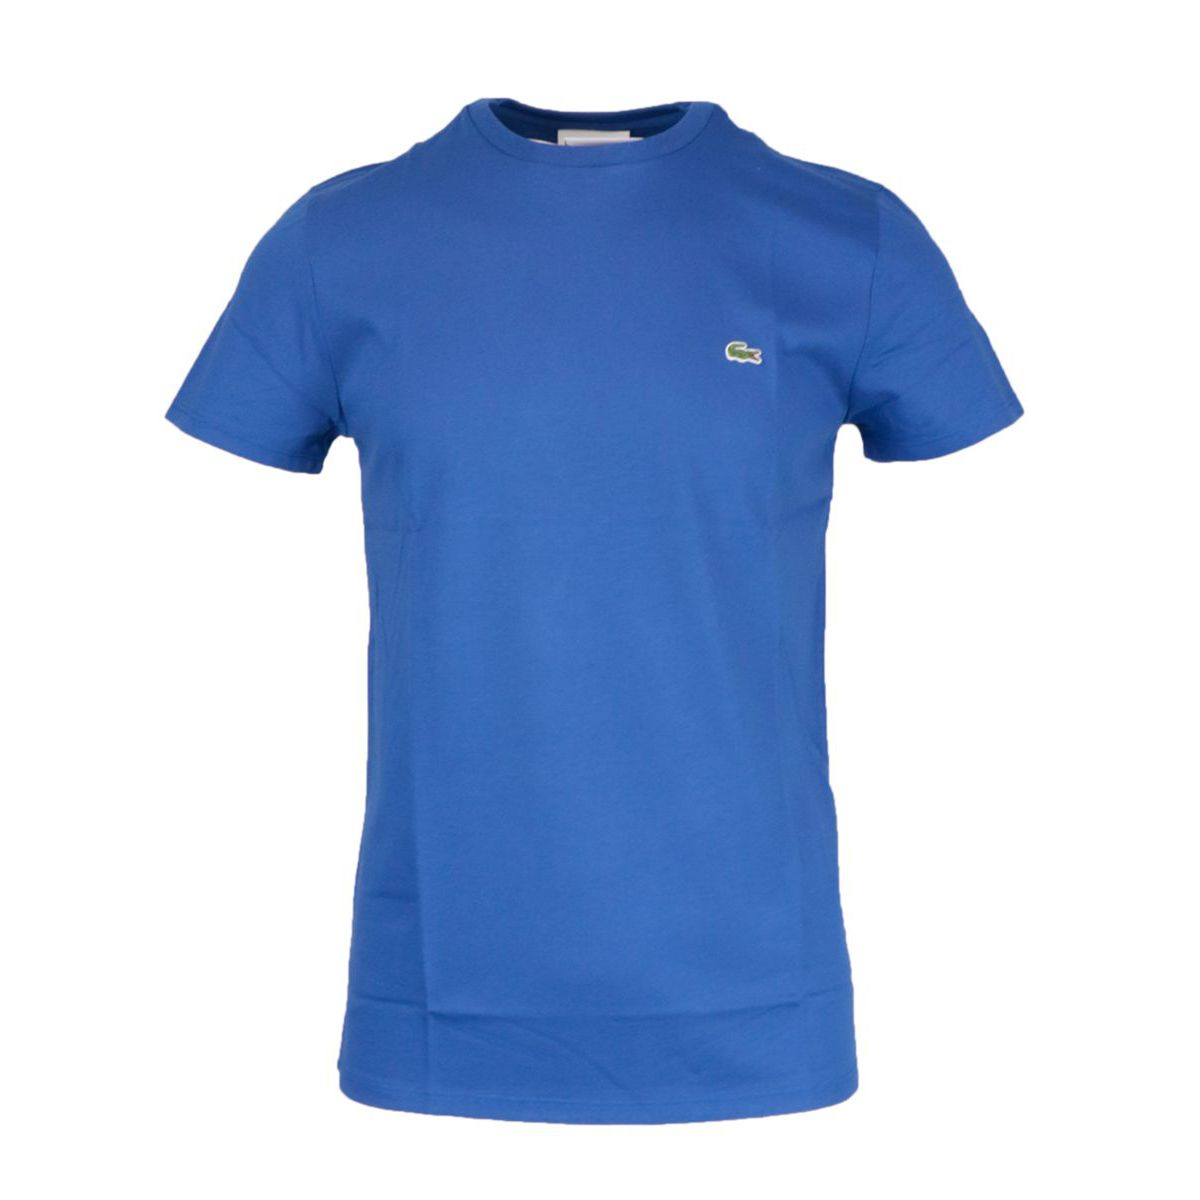 Regular cotton T-shirt with small logo applied Indigo Lacoste